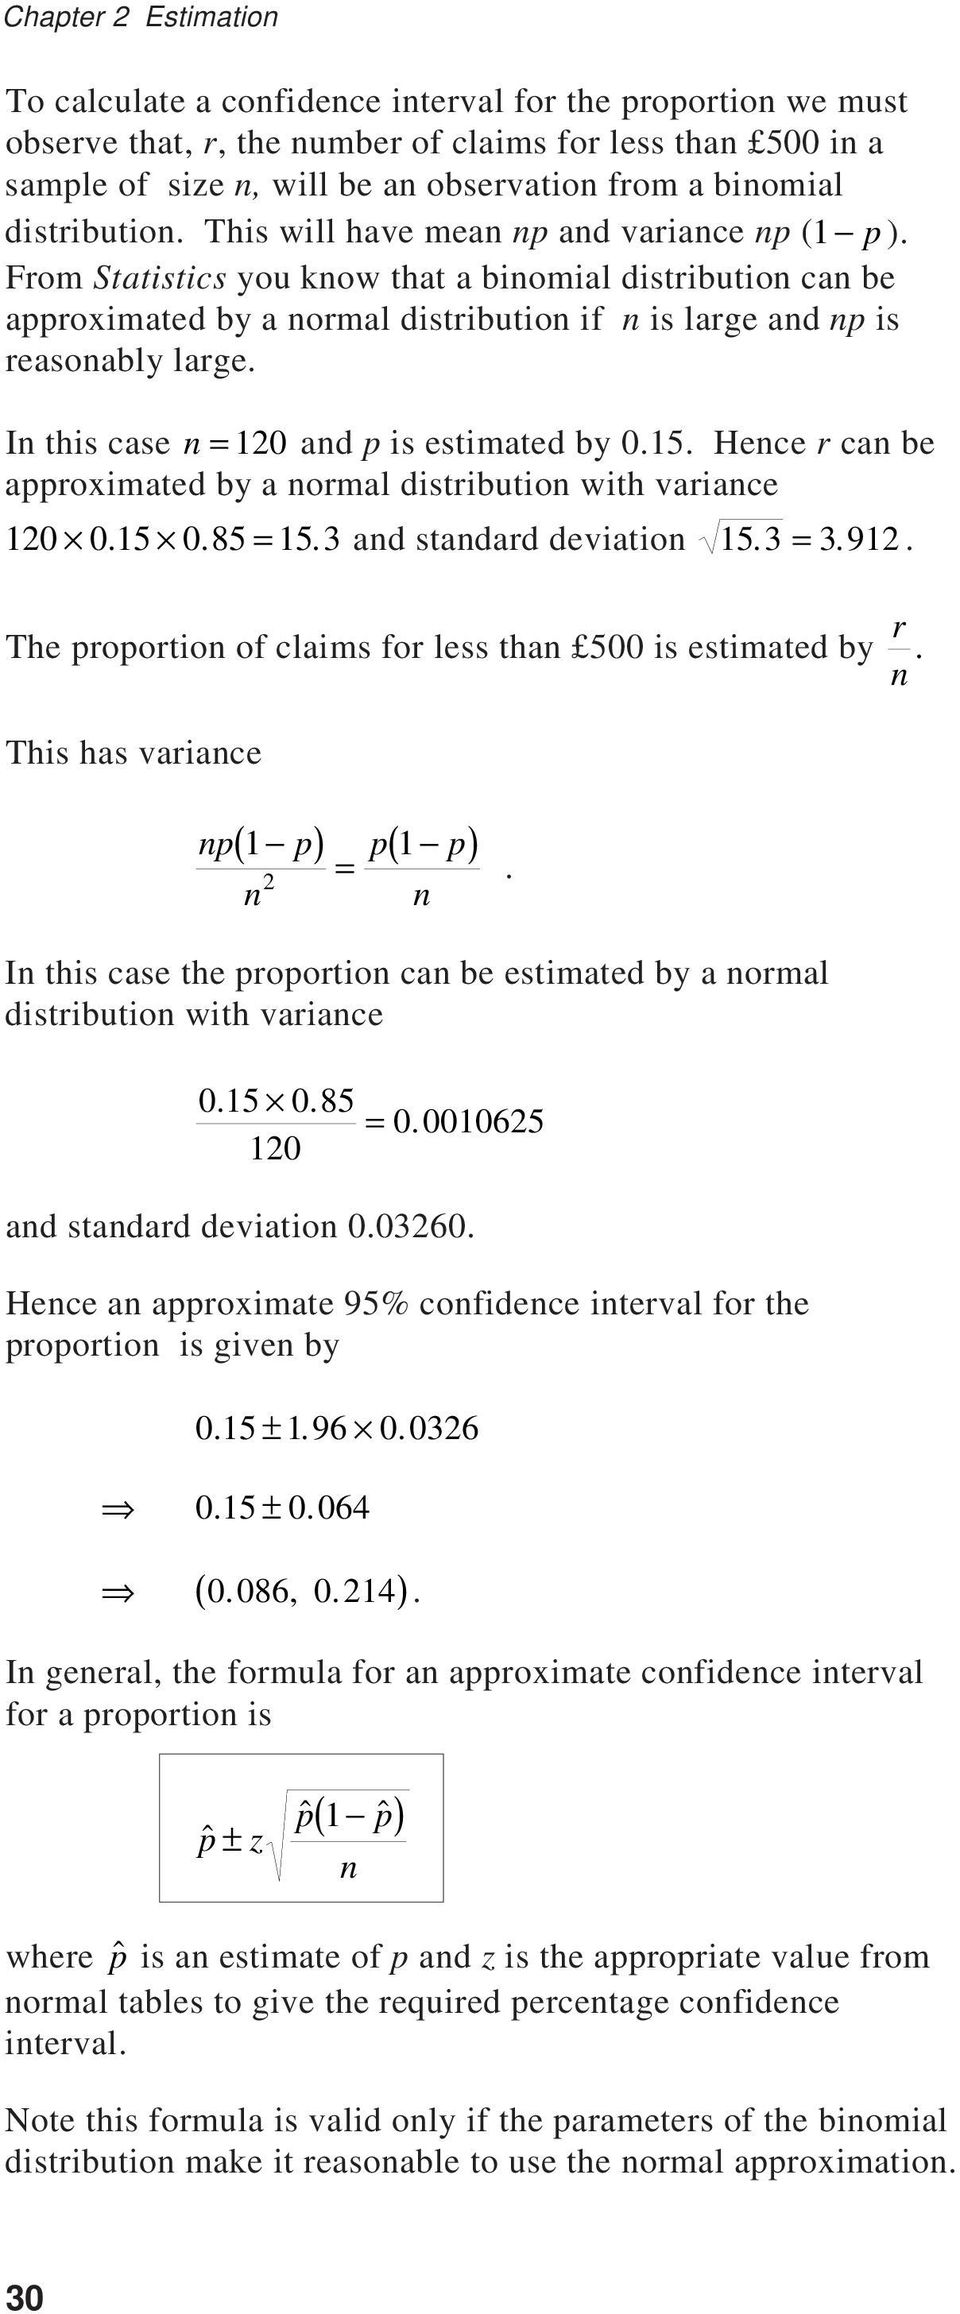 In this case n = 120 and p is estimated by 0.15. Hence r can be approximated by a normal distribution with variance 120 0.15 0.85 = 15.3 and standard deviation 15.3 = 3.912.